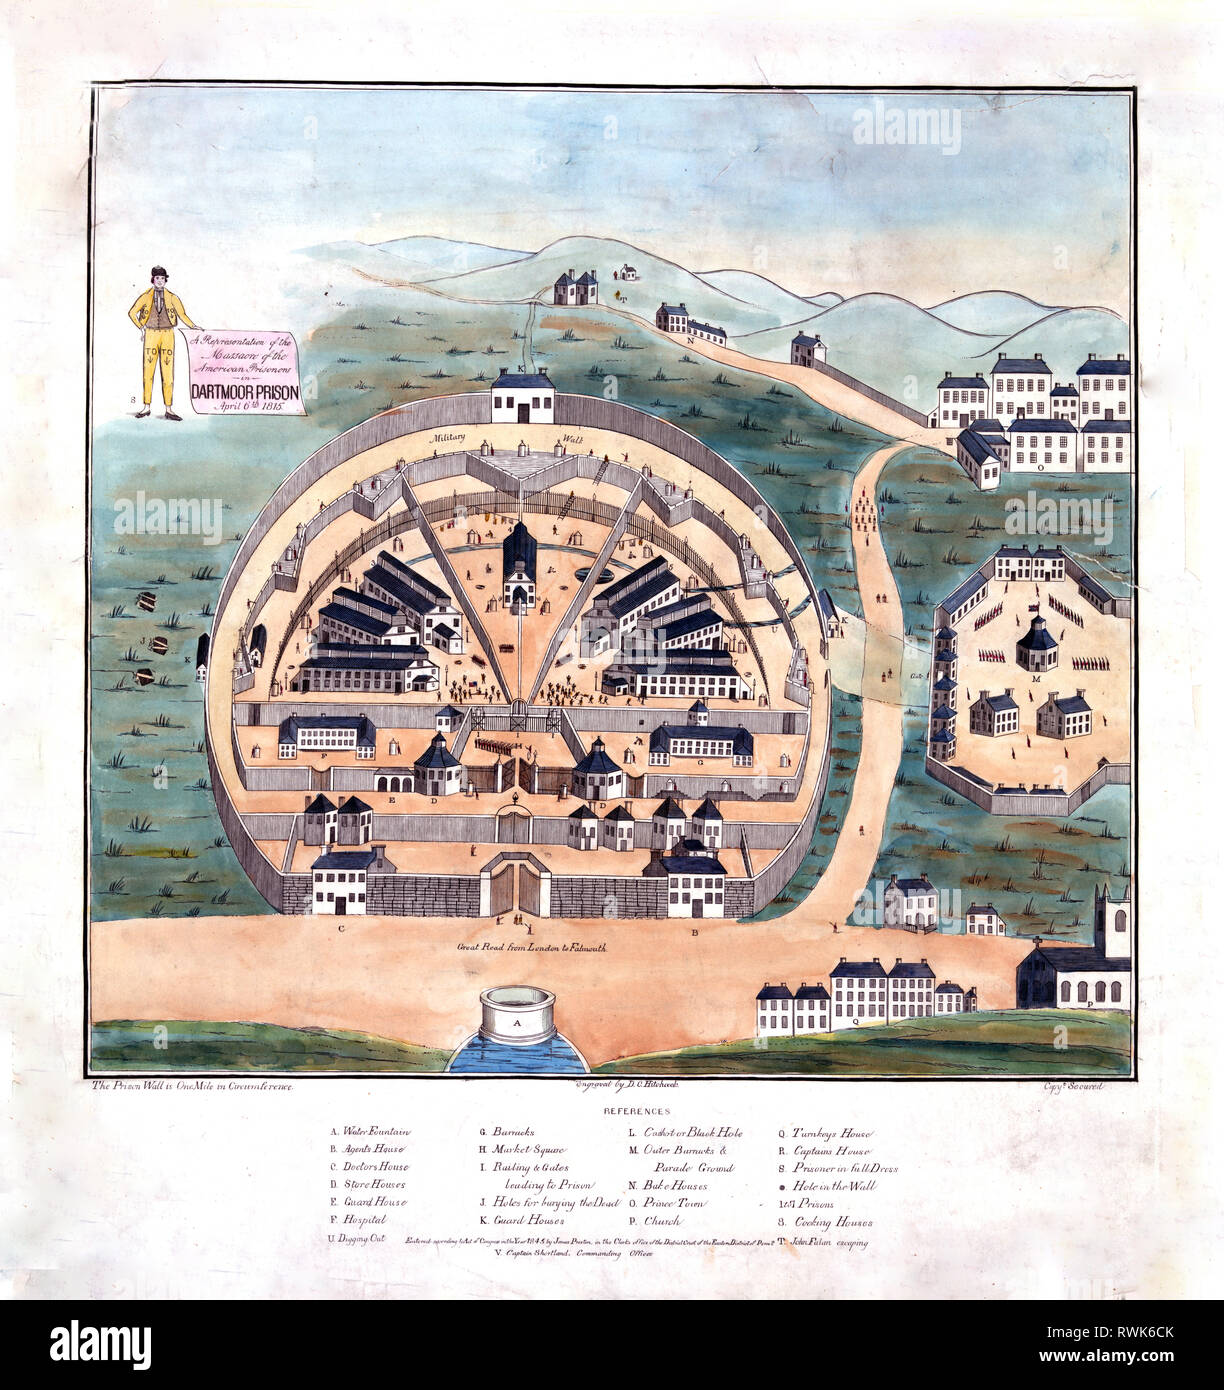 Print shows Dartmoor Prison in Devon, England, where American prisoners of war captured by British forces, especially at sea, were confined, even after the Trety of Ghen was signed in December 1814. Angered at being left behind, prisoners burned U.S. agent Reuben G. Beasley in effigy, which led to a confrontation with prison guards and a reduction of rations. Fearful of insubordination, guards shot the prisoners, killing 7 and wounding 31. - Stock Image